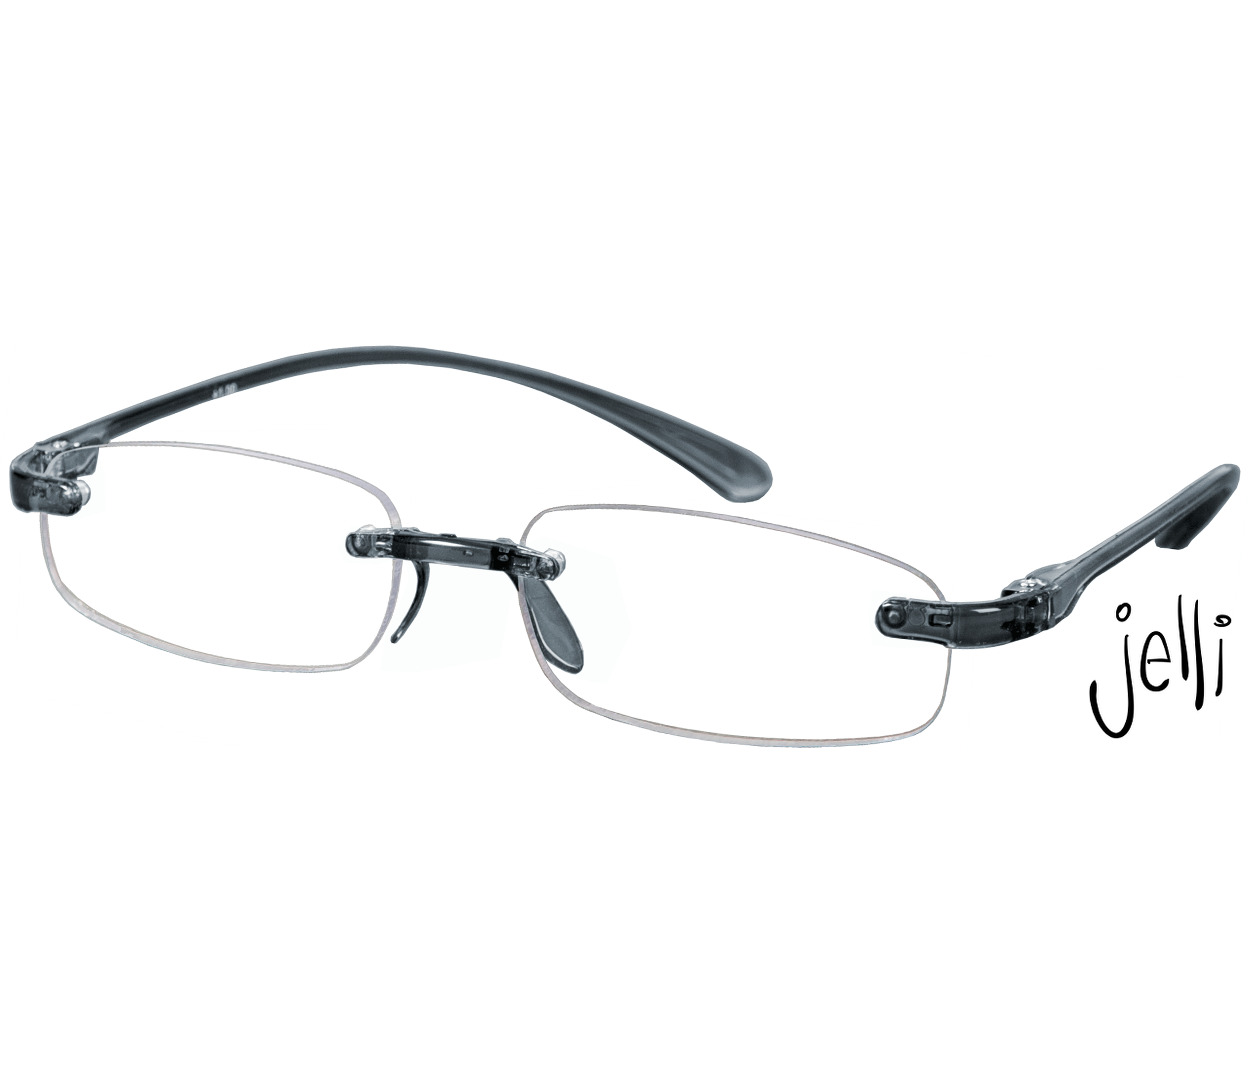 Main Image (Angle) - Jelli (Grey) Reading Glasses